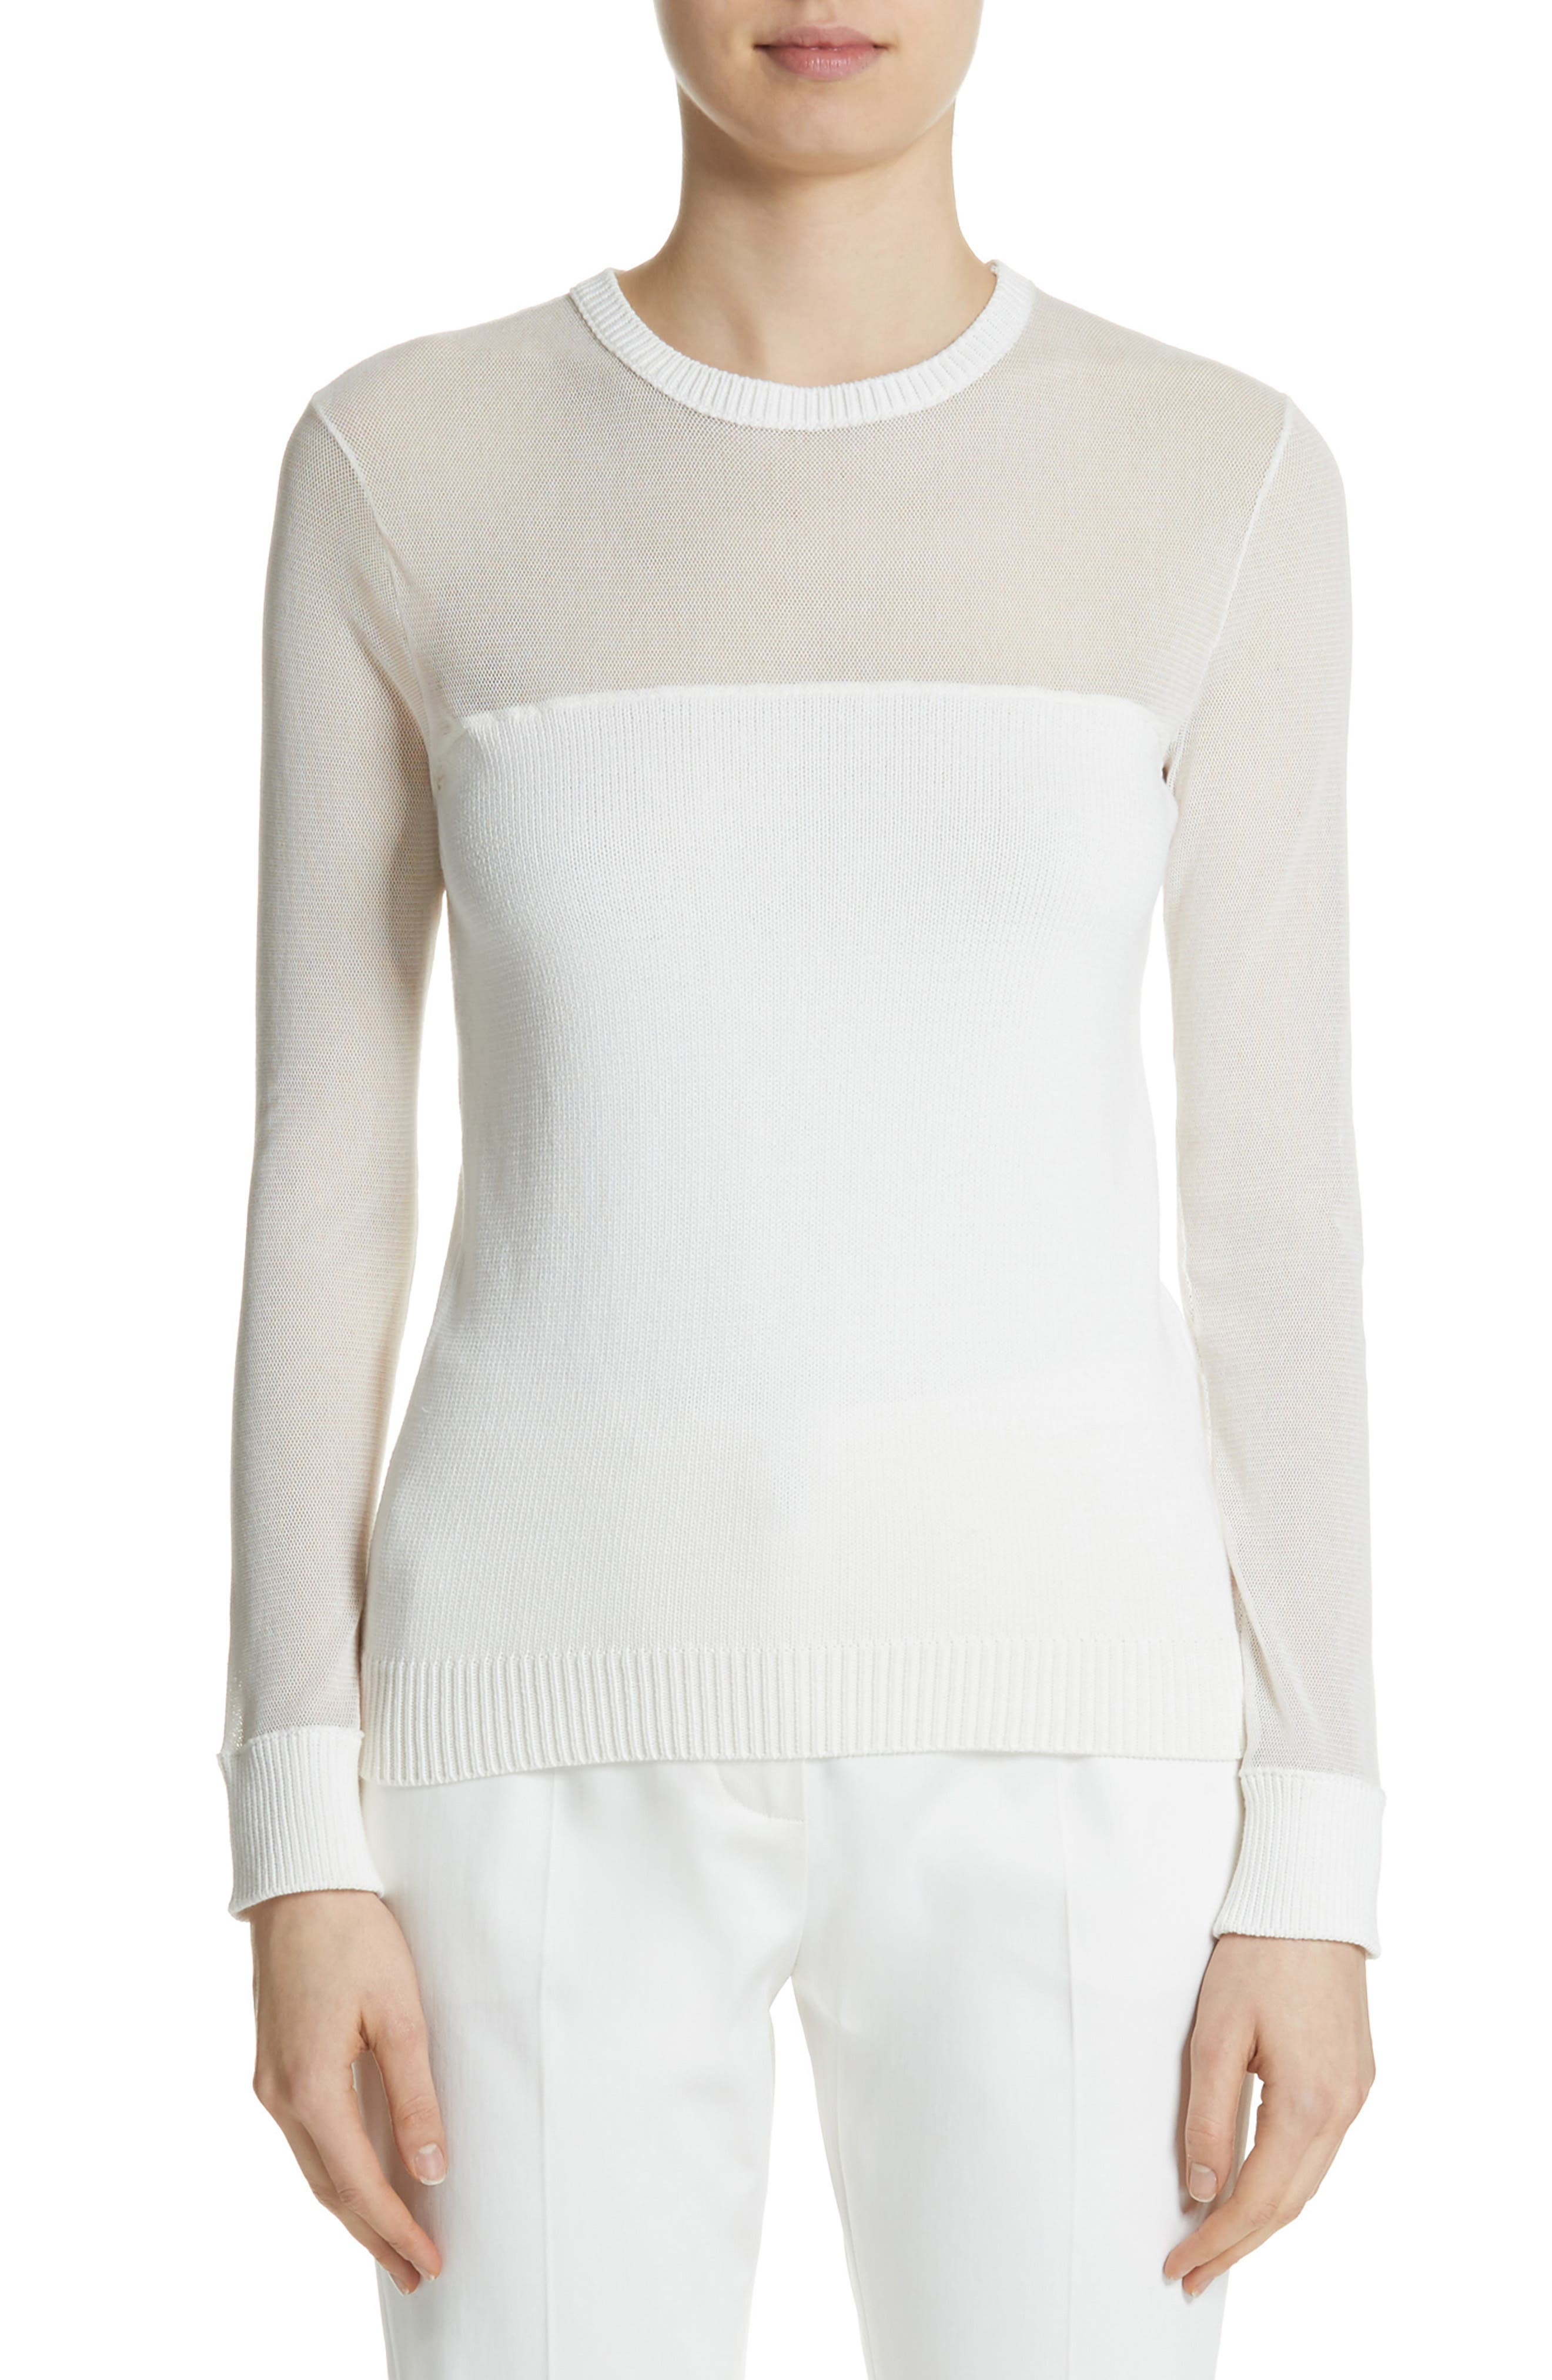 Cantore Mesh Yoke Sweater,                             Main thumbnail 1, color,                             Ivory